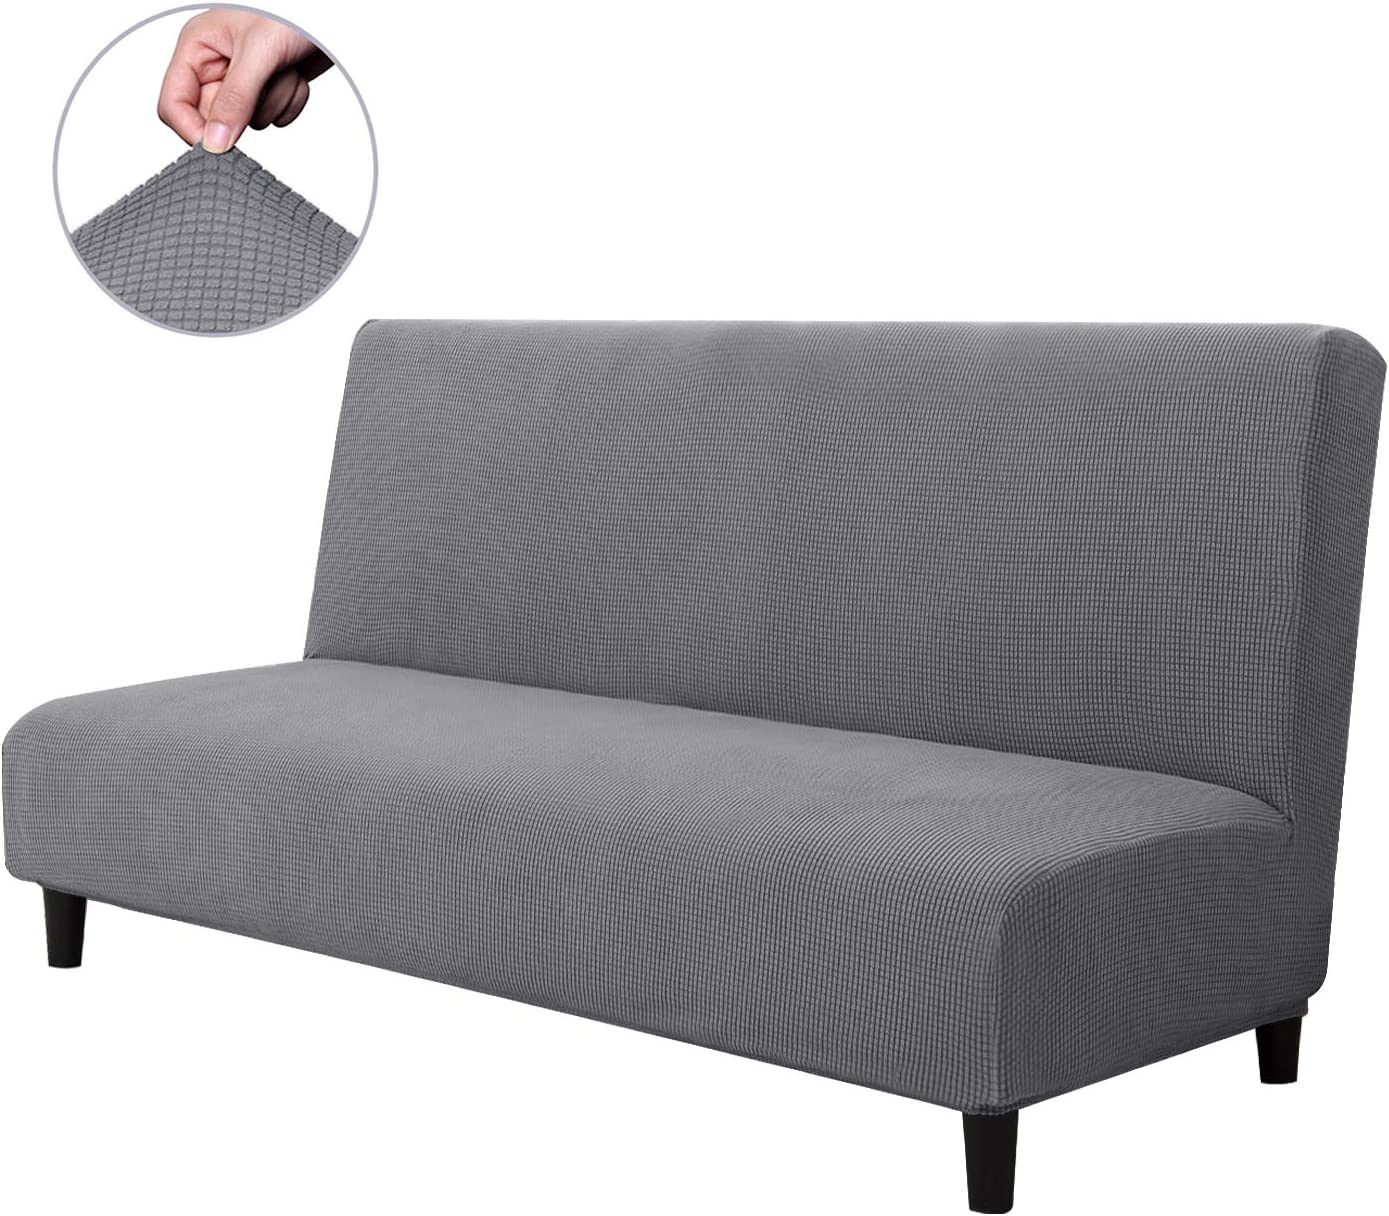 CHUN YI Armless Sofa Slipcover Elastic Fitted Full Folding Sofa Bed Cover Without Armrests,Removable Machine Washable Non-Slip Furniture Protector for Futon Couch Bench (Sofa, Light Gray)